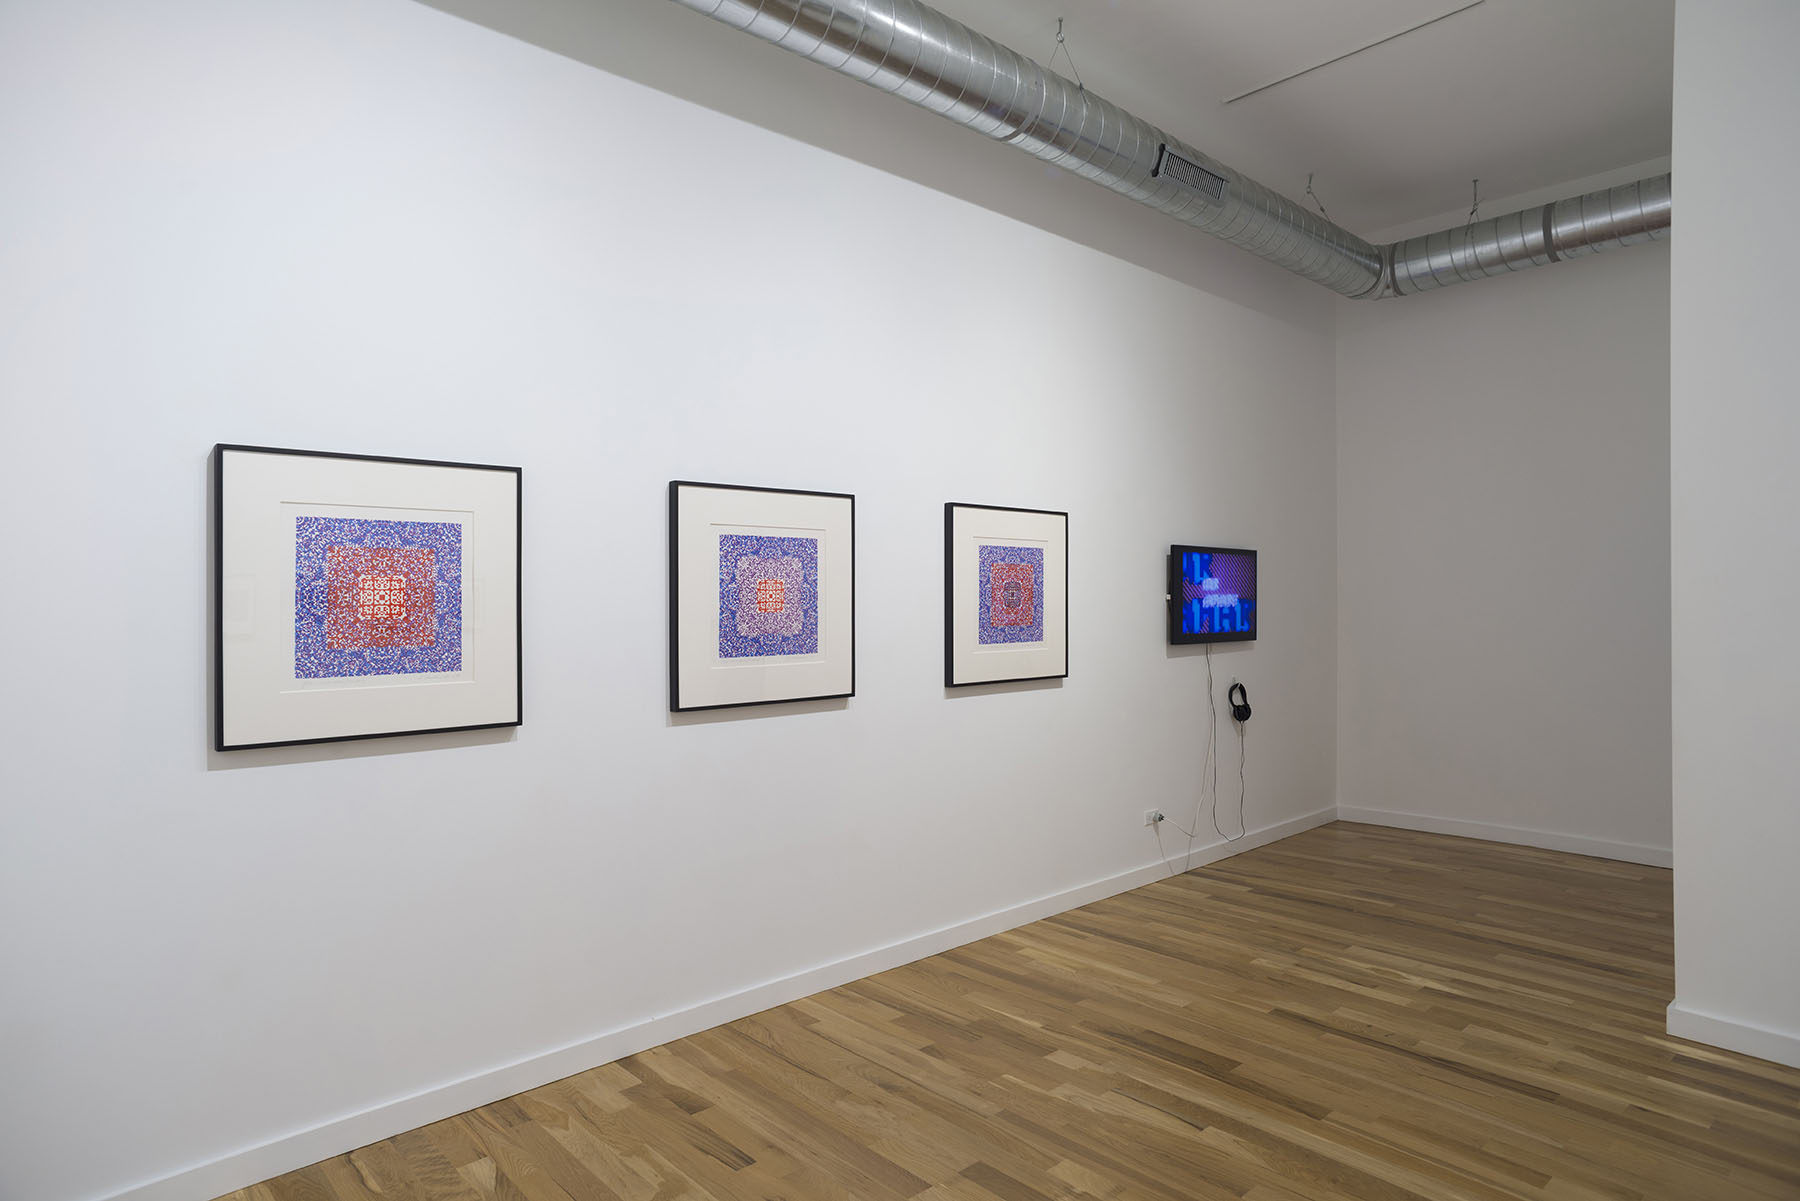 VanDerBeek_Installation view at DOCUMENT07_Web.jpg